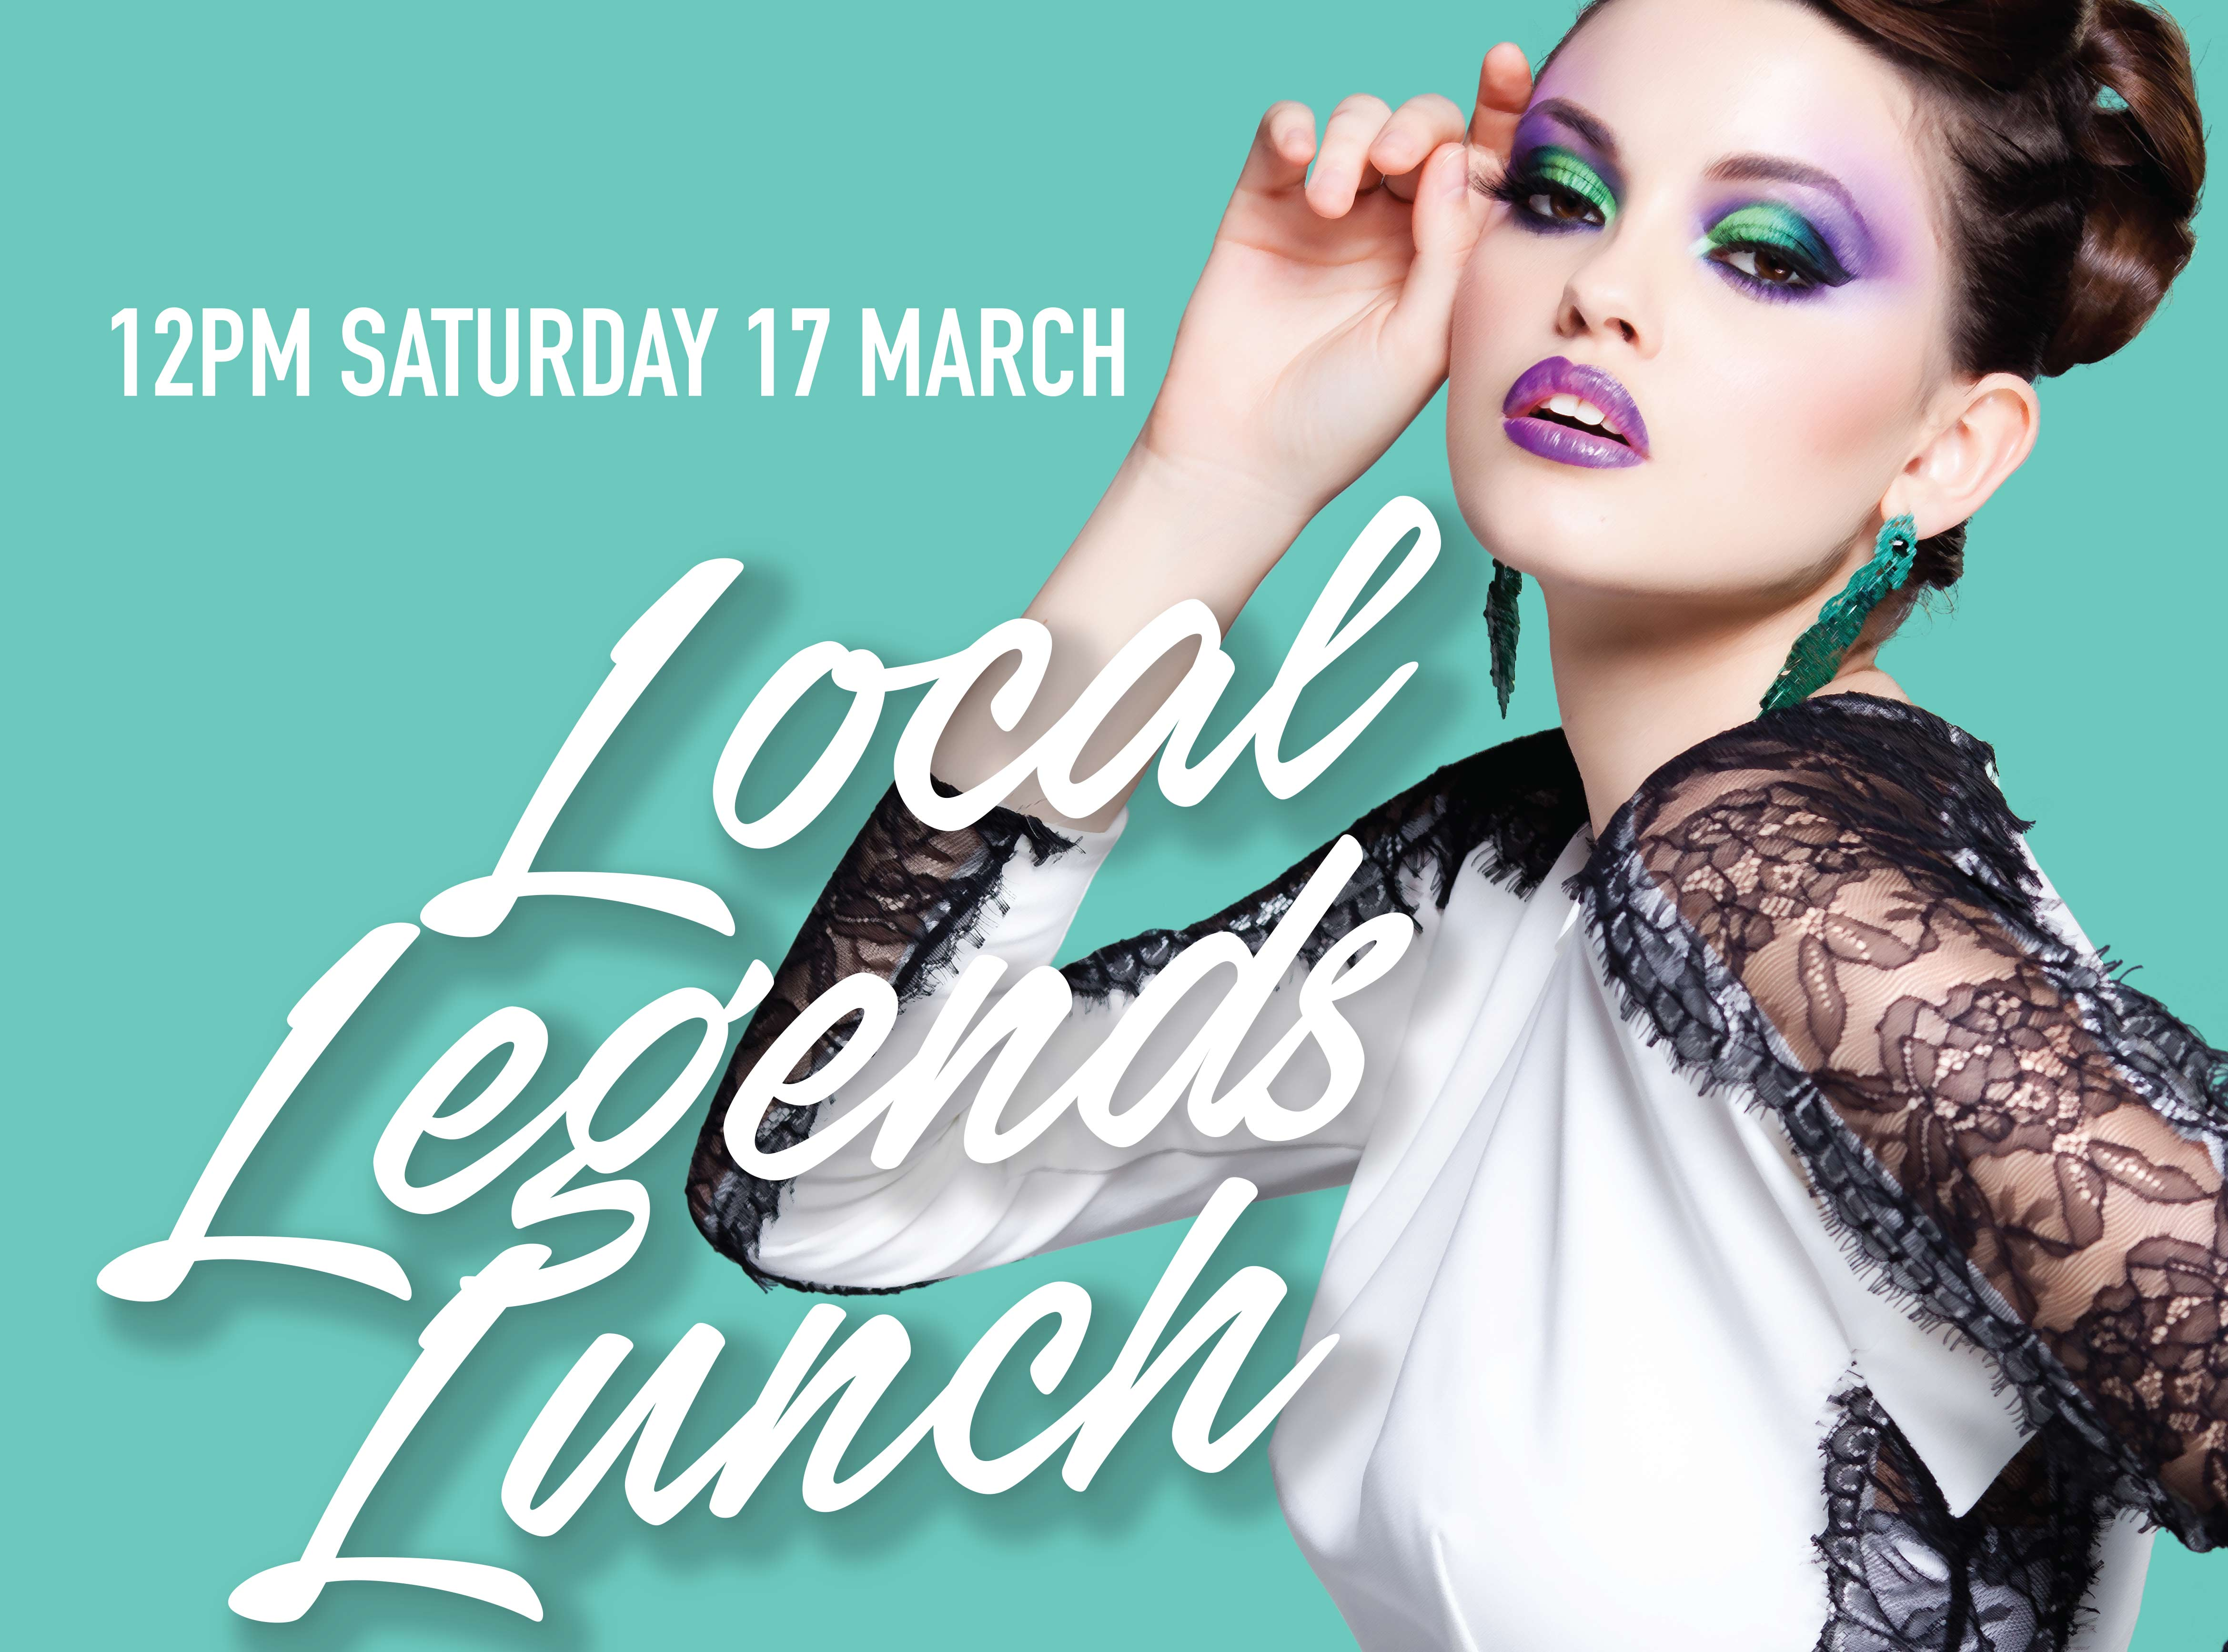 Local Legends Lunch